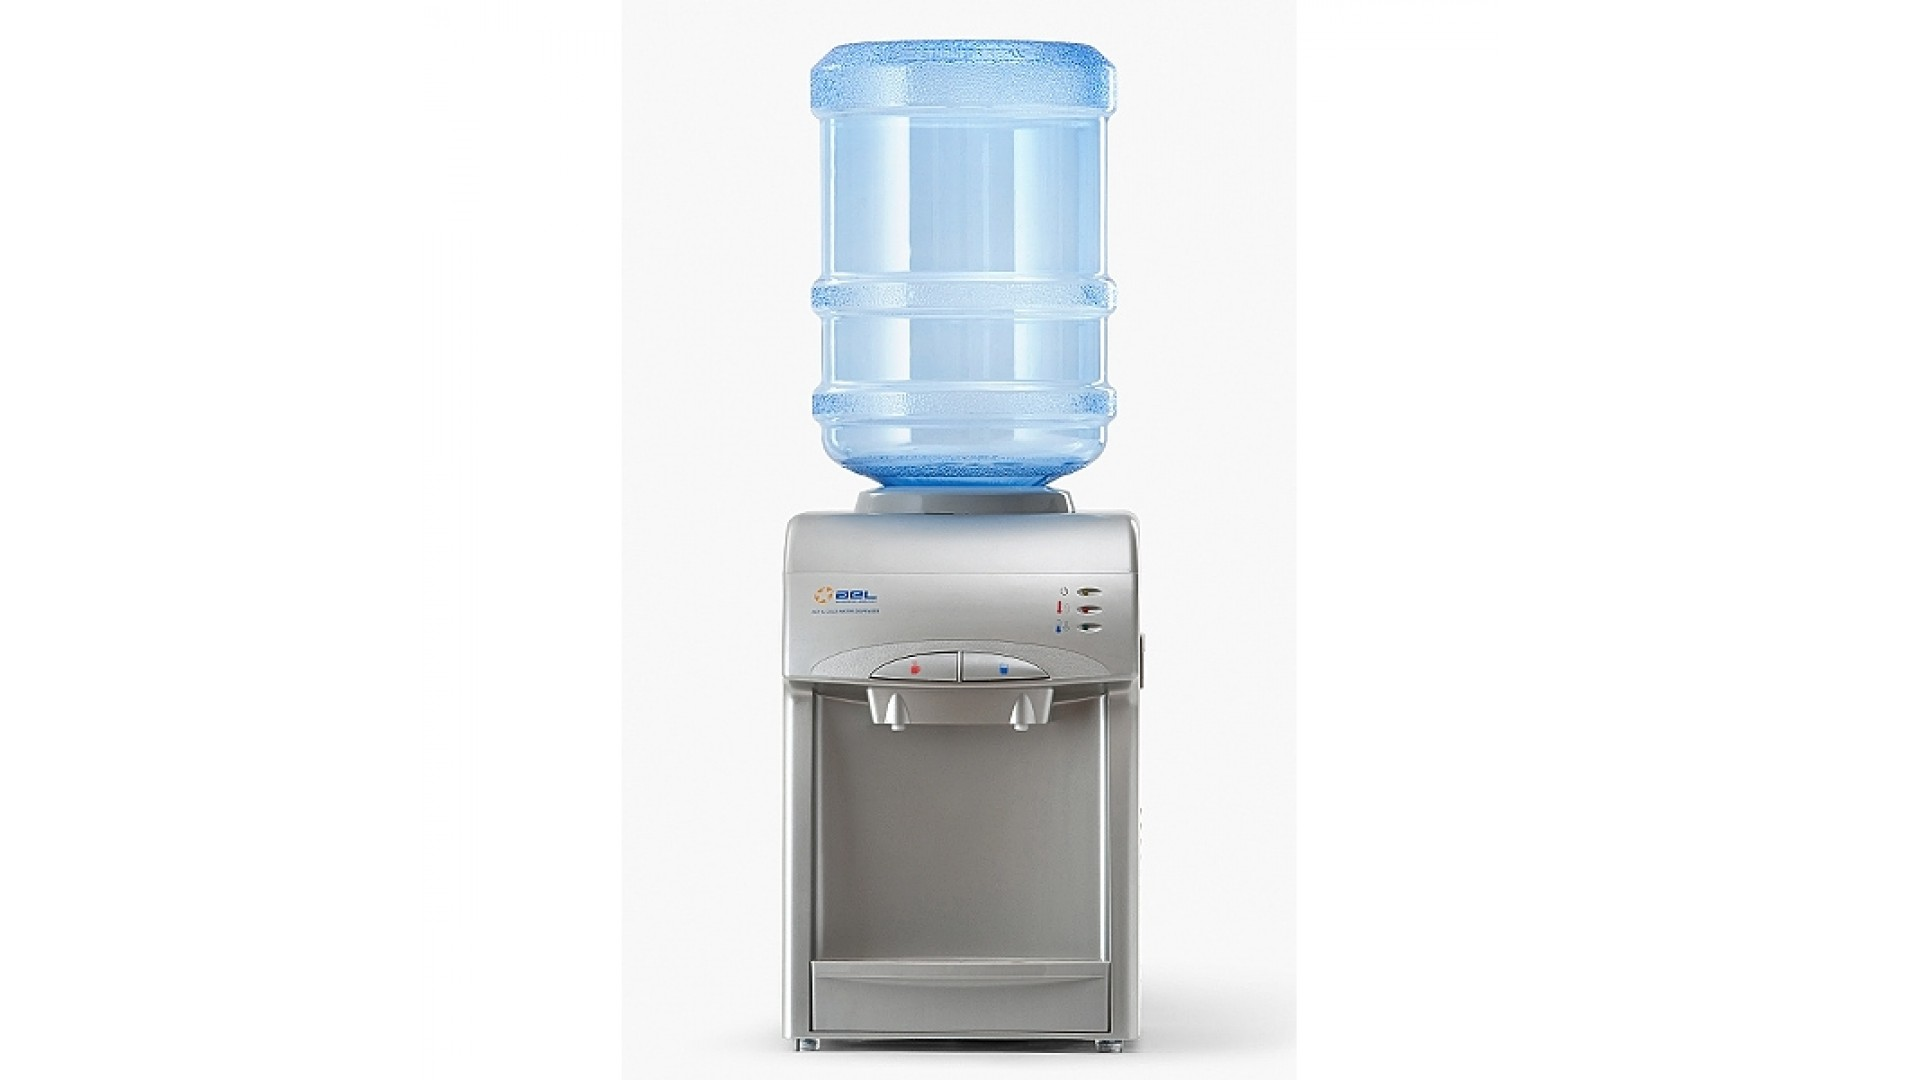 water-dispenser-ylrt-2-5k (silver)